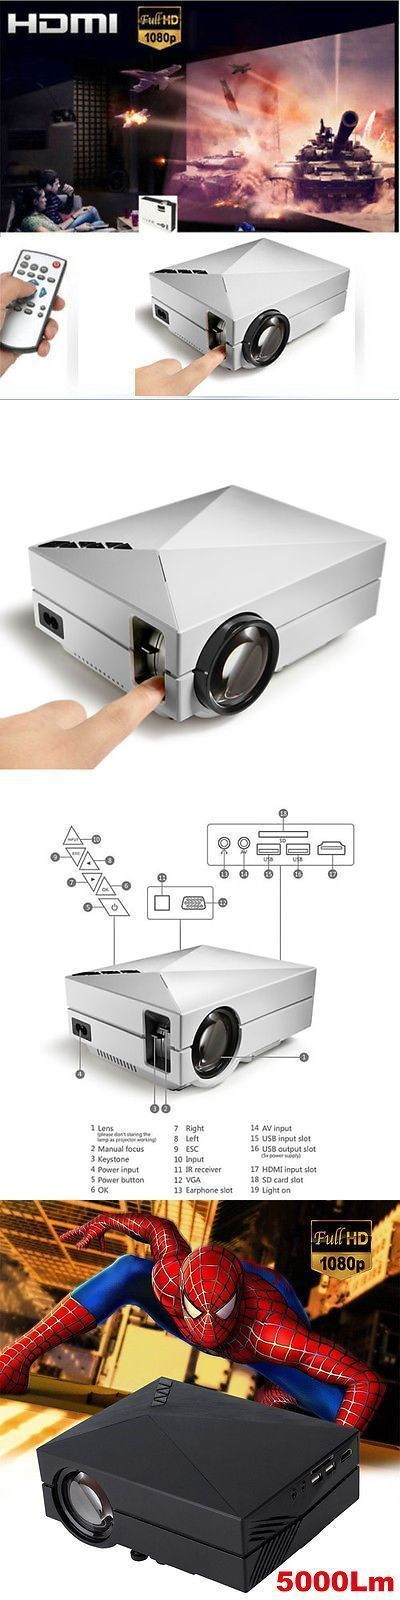 Home Theater Projectors: 1000 Lumens Hd Led Video Projector Home Cinema 3D Effect 1080P-Hdmi Multimedia BUY IT NOW ONLY: $71.99 #hometheatreprojectors #hometheateraccessories